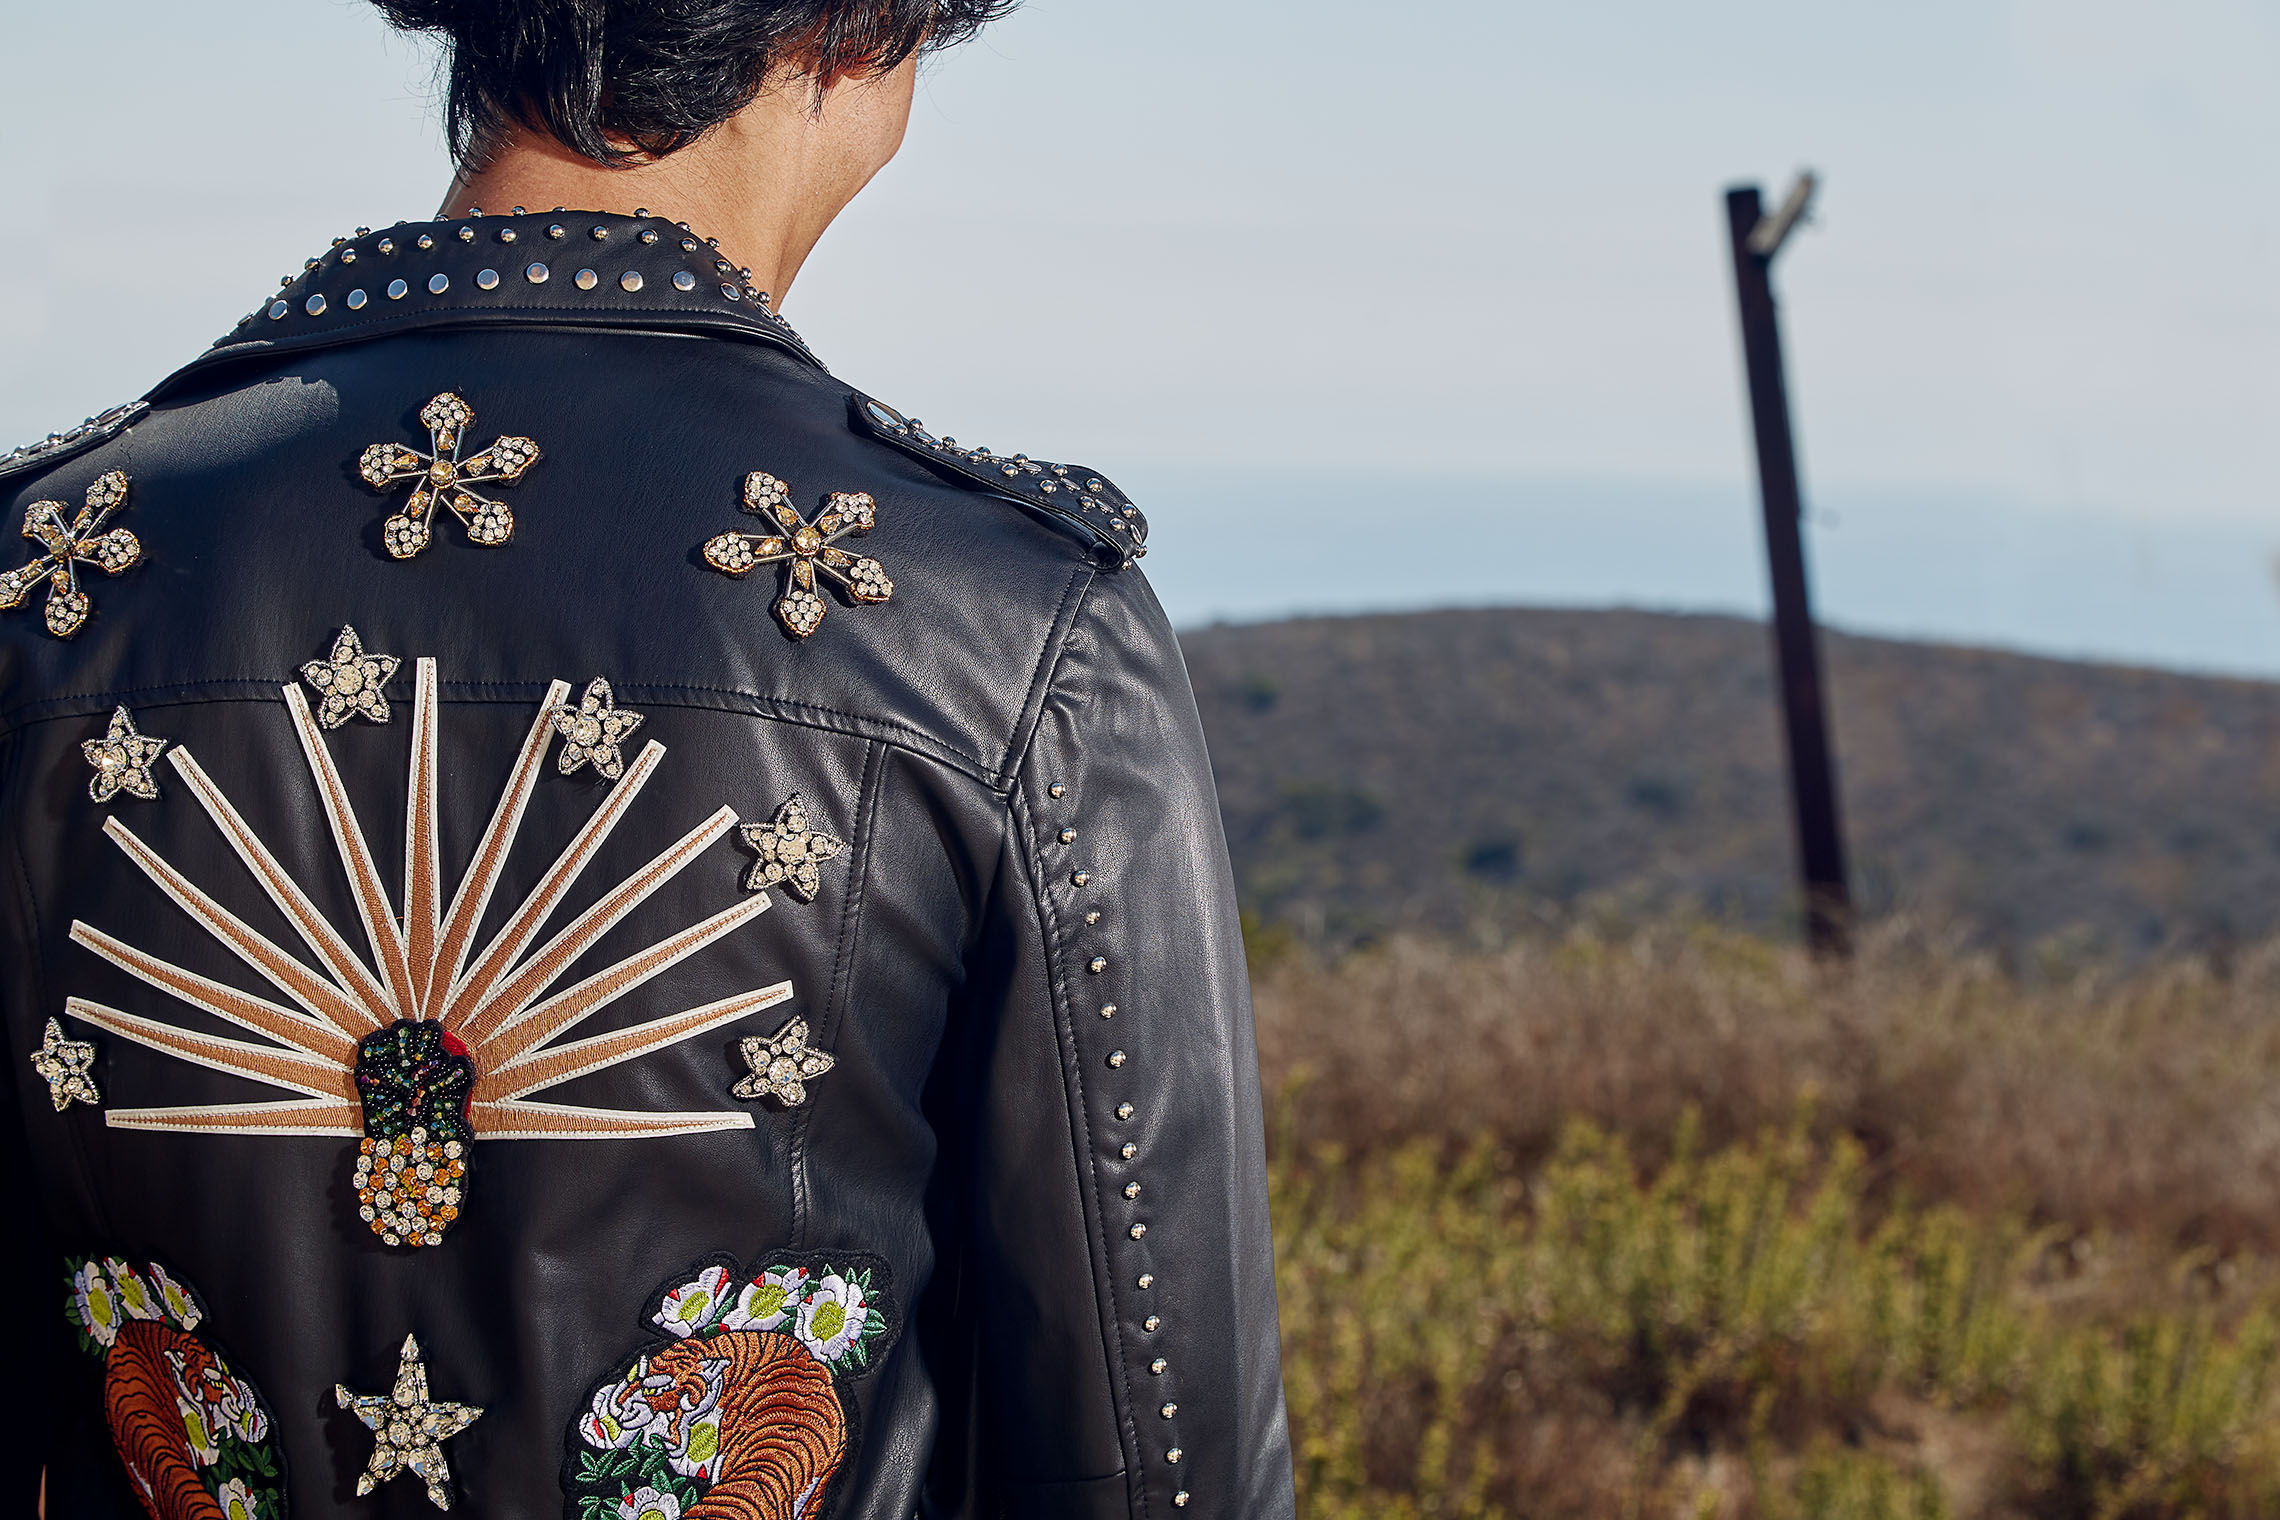 Male leather jacket, photographed from behind, see the stitching and adorning patterns in this stylish jacket, Malibu, LA, California